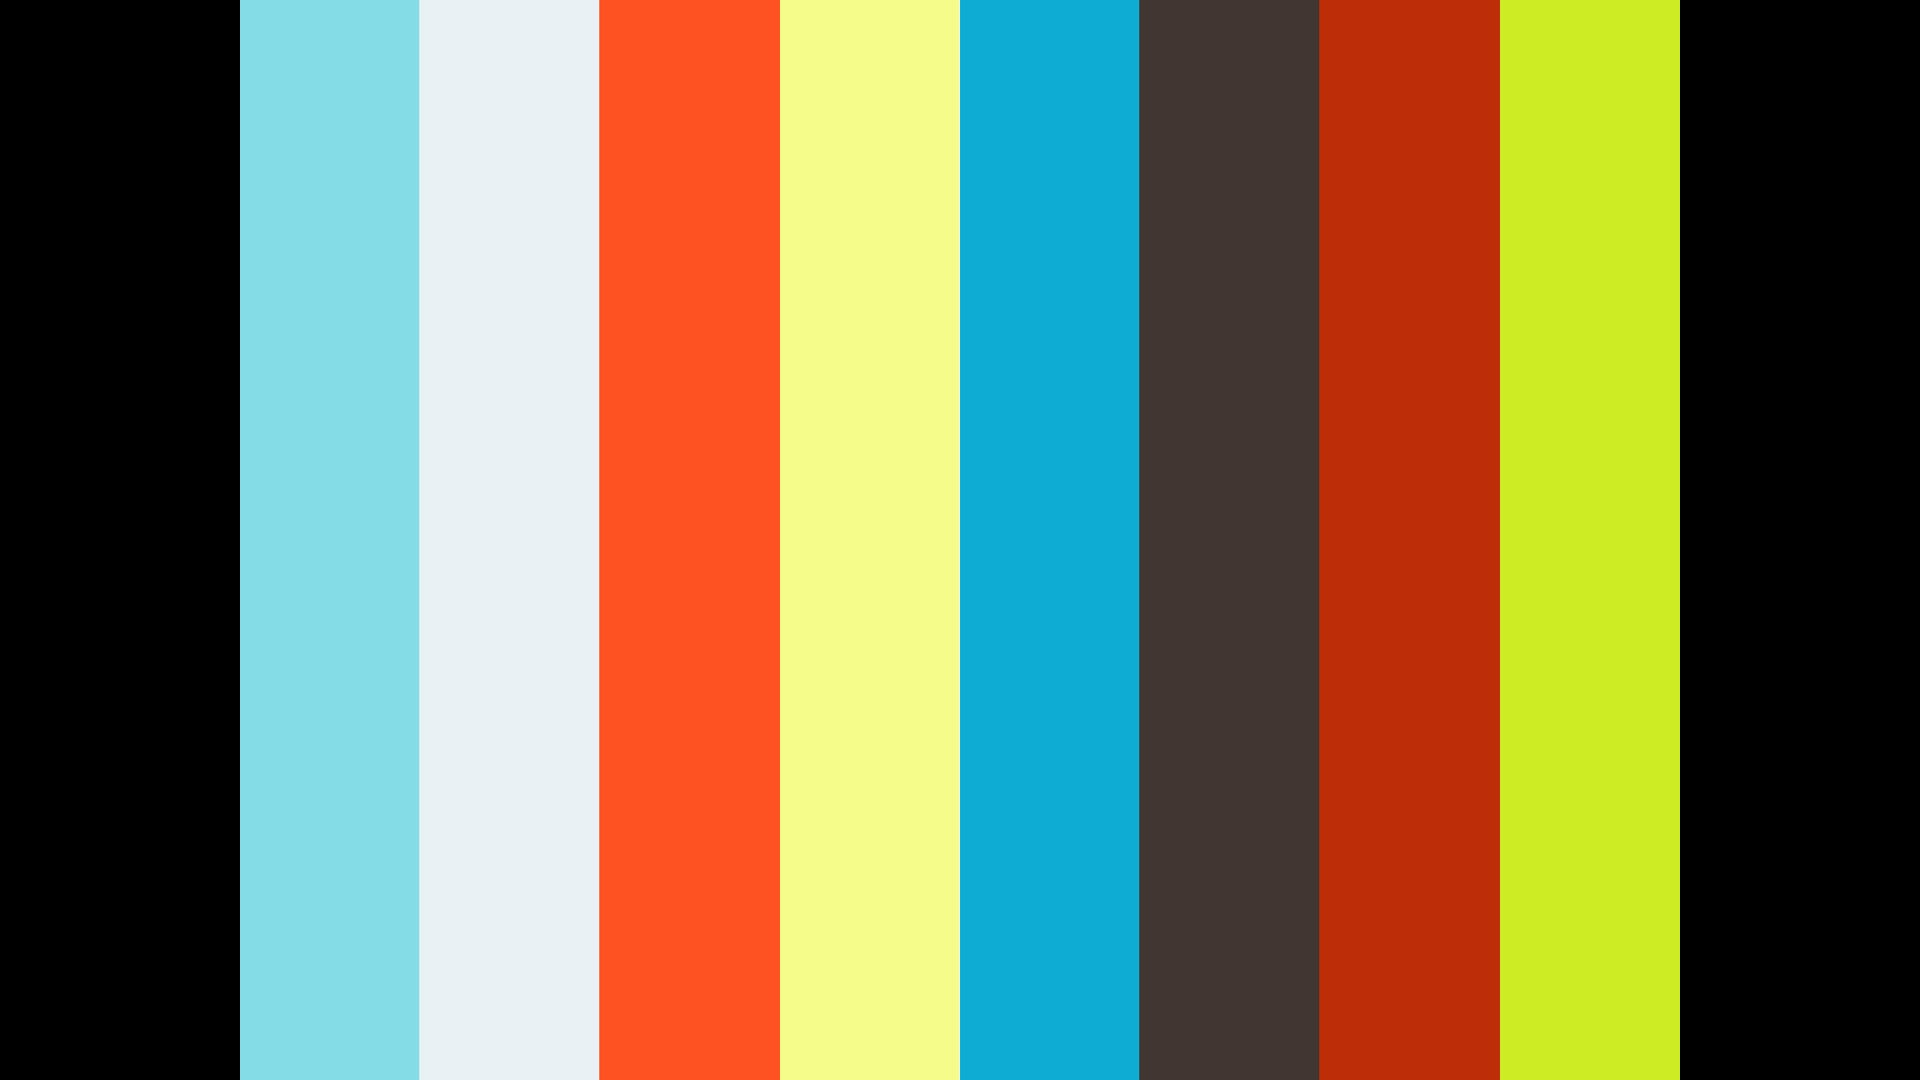 Report of Executive Director - Rick Lance